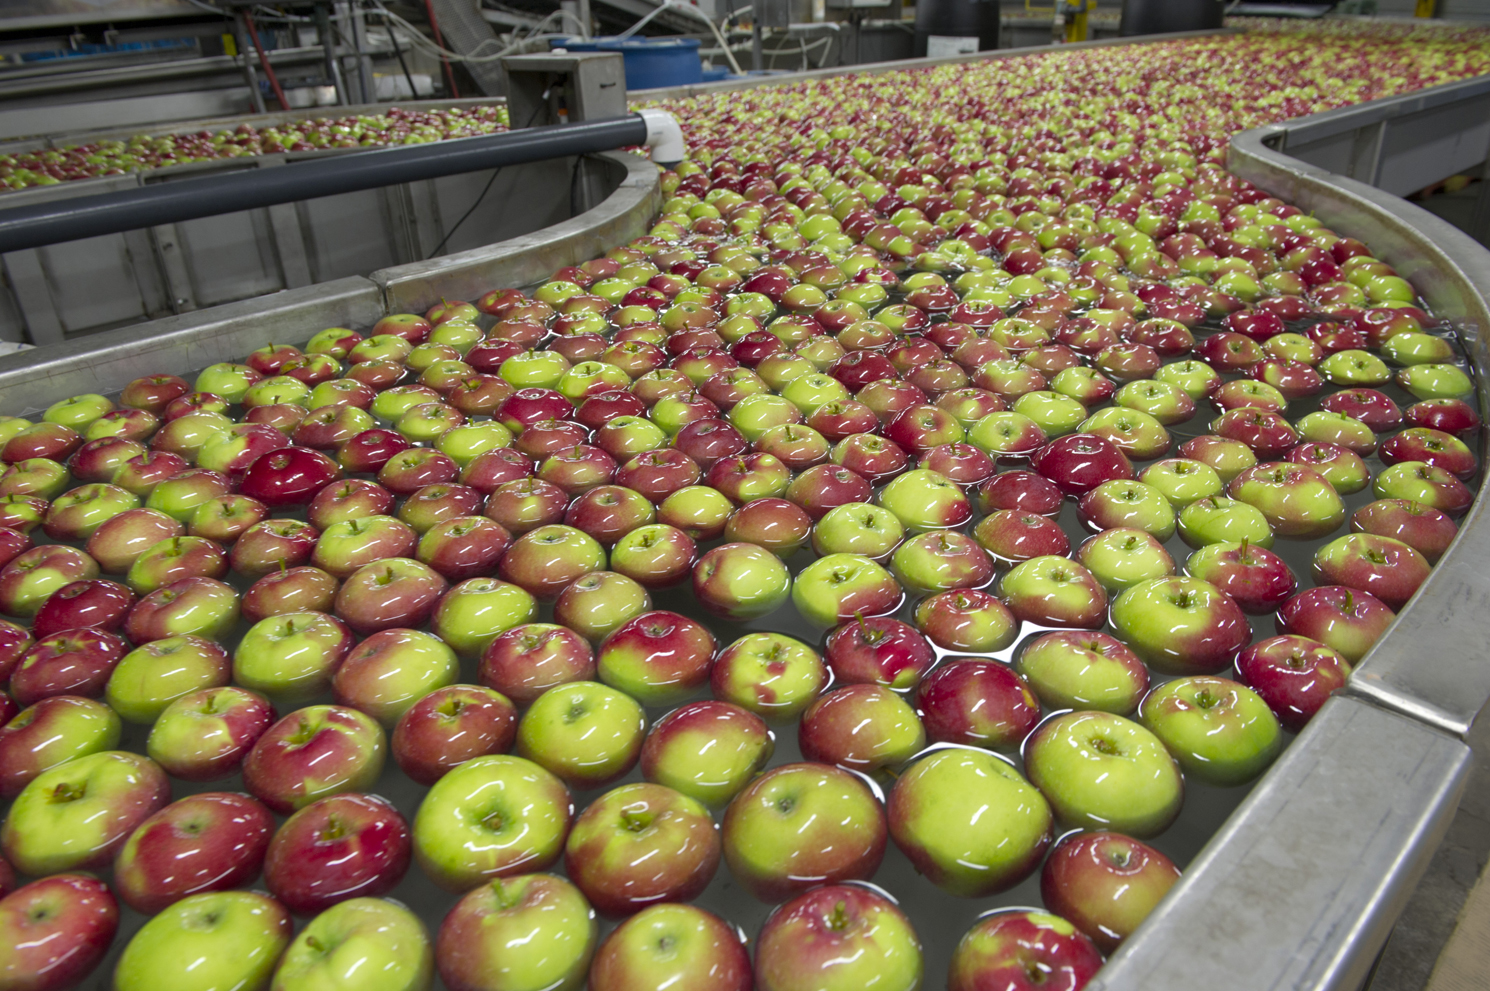 Apples are washed after they arrive at the Norfolk Fruit Growers' facility  - then they'll be packed ready for market.